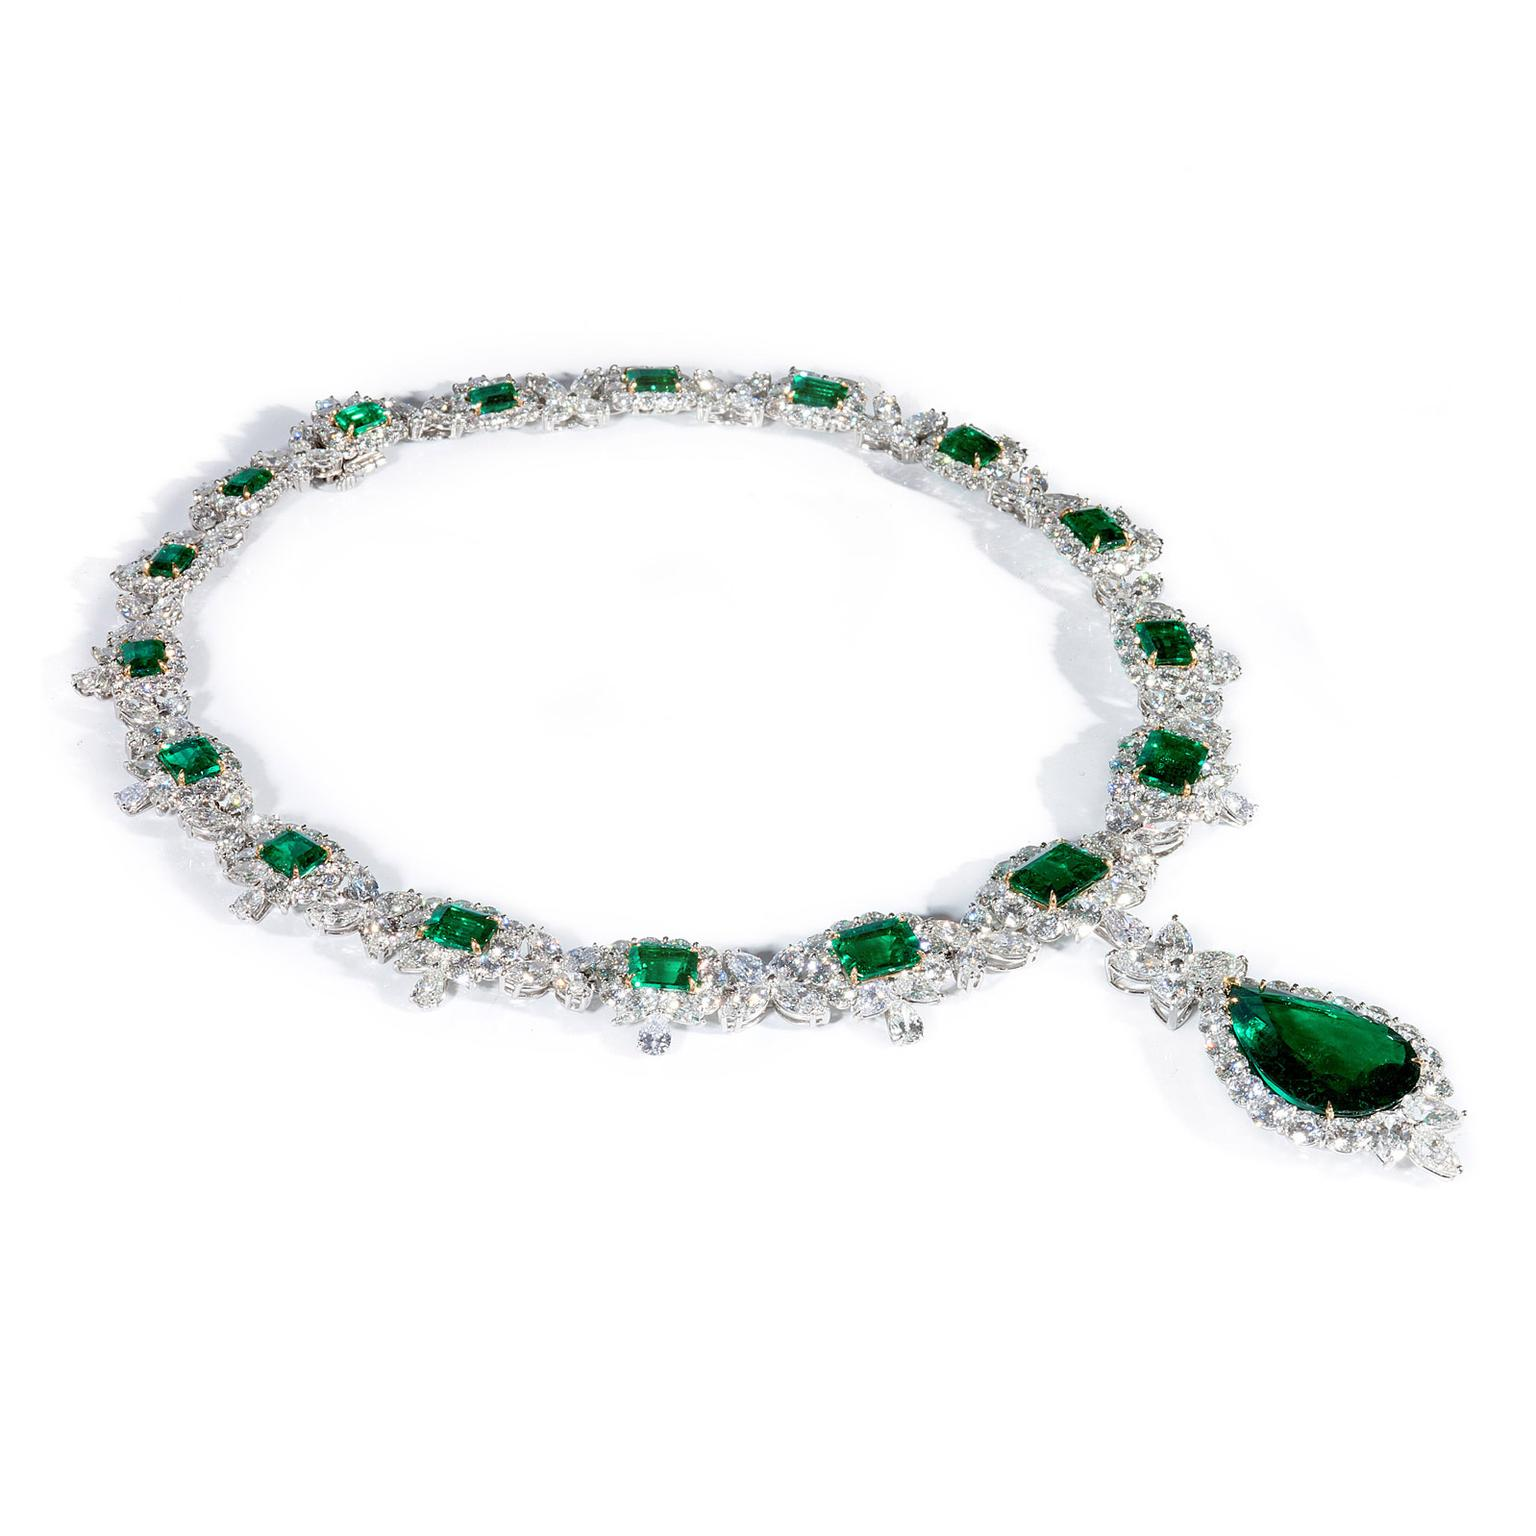 Bayco Colombian Emerald and diamond necklace